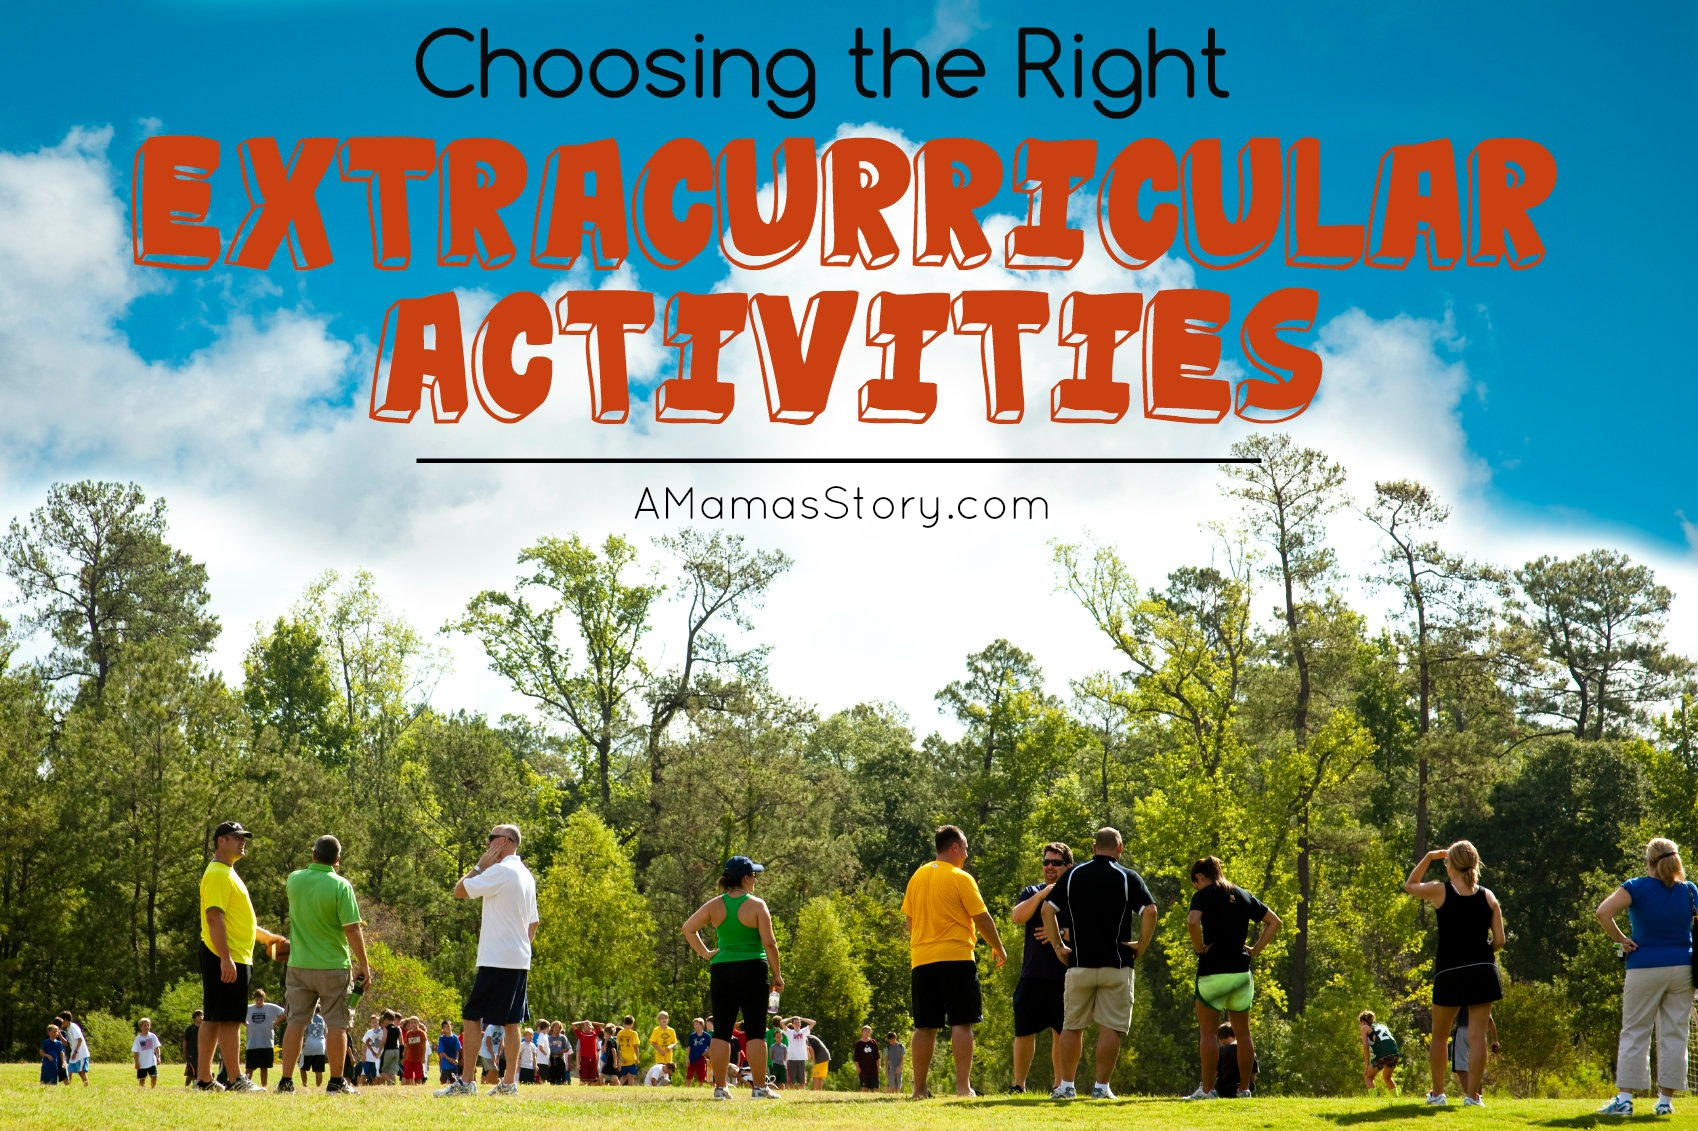 Choosing the Right Extracurricular Activities